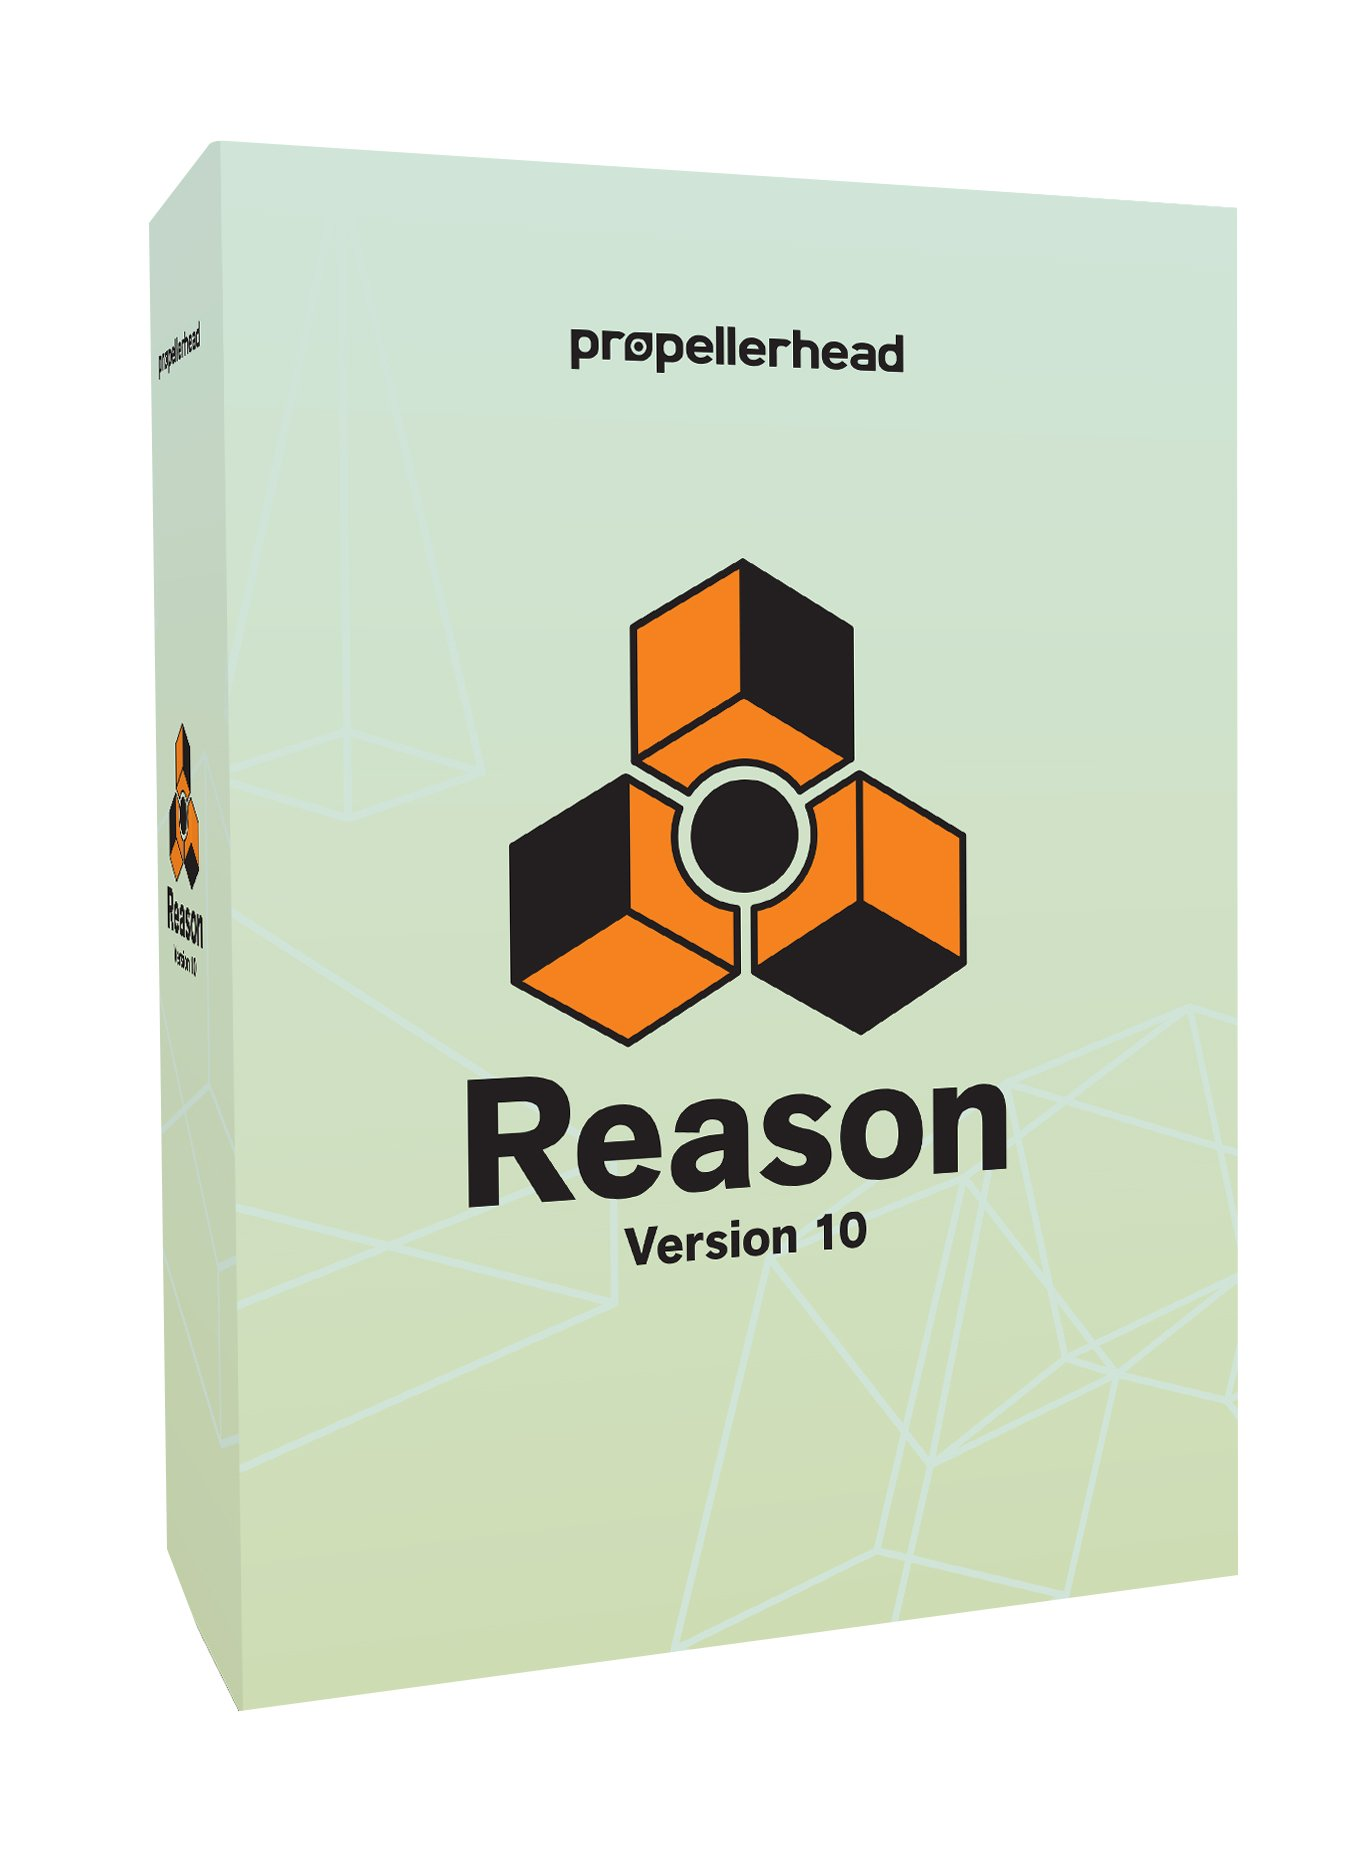 Propellerhead Reason 10 Music Production Software by Propellerhead